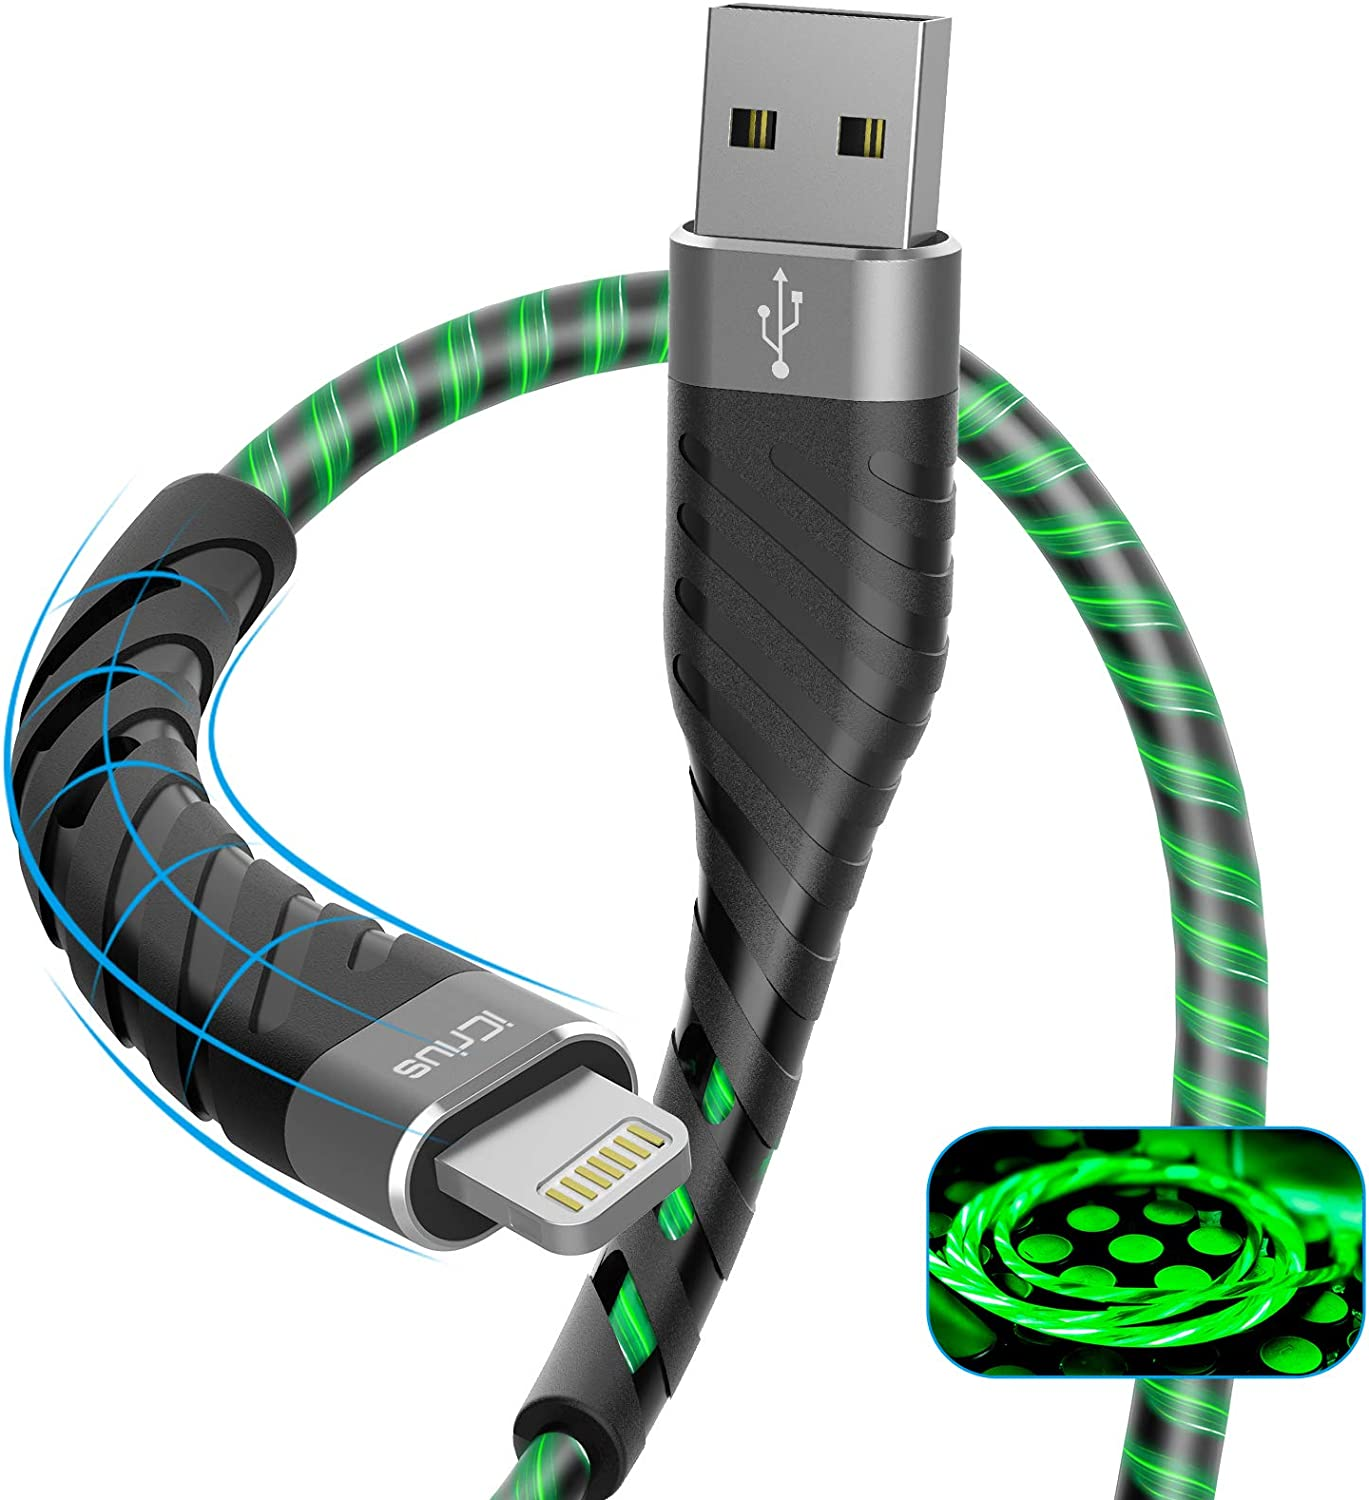 iPhone Charger, iCrius [Apple MFi Certified] 6Ft Led Light Up Lightning Cable USB Fast Charger Charging Cord Compatible with iPhone 11 Pro Max XS XR X 8 7 6 Plus SE iPad and More(Green)